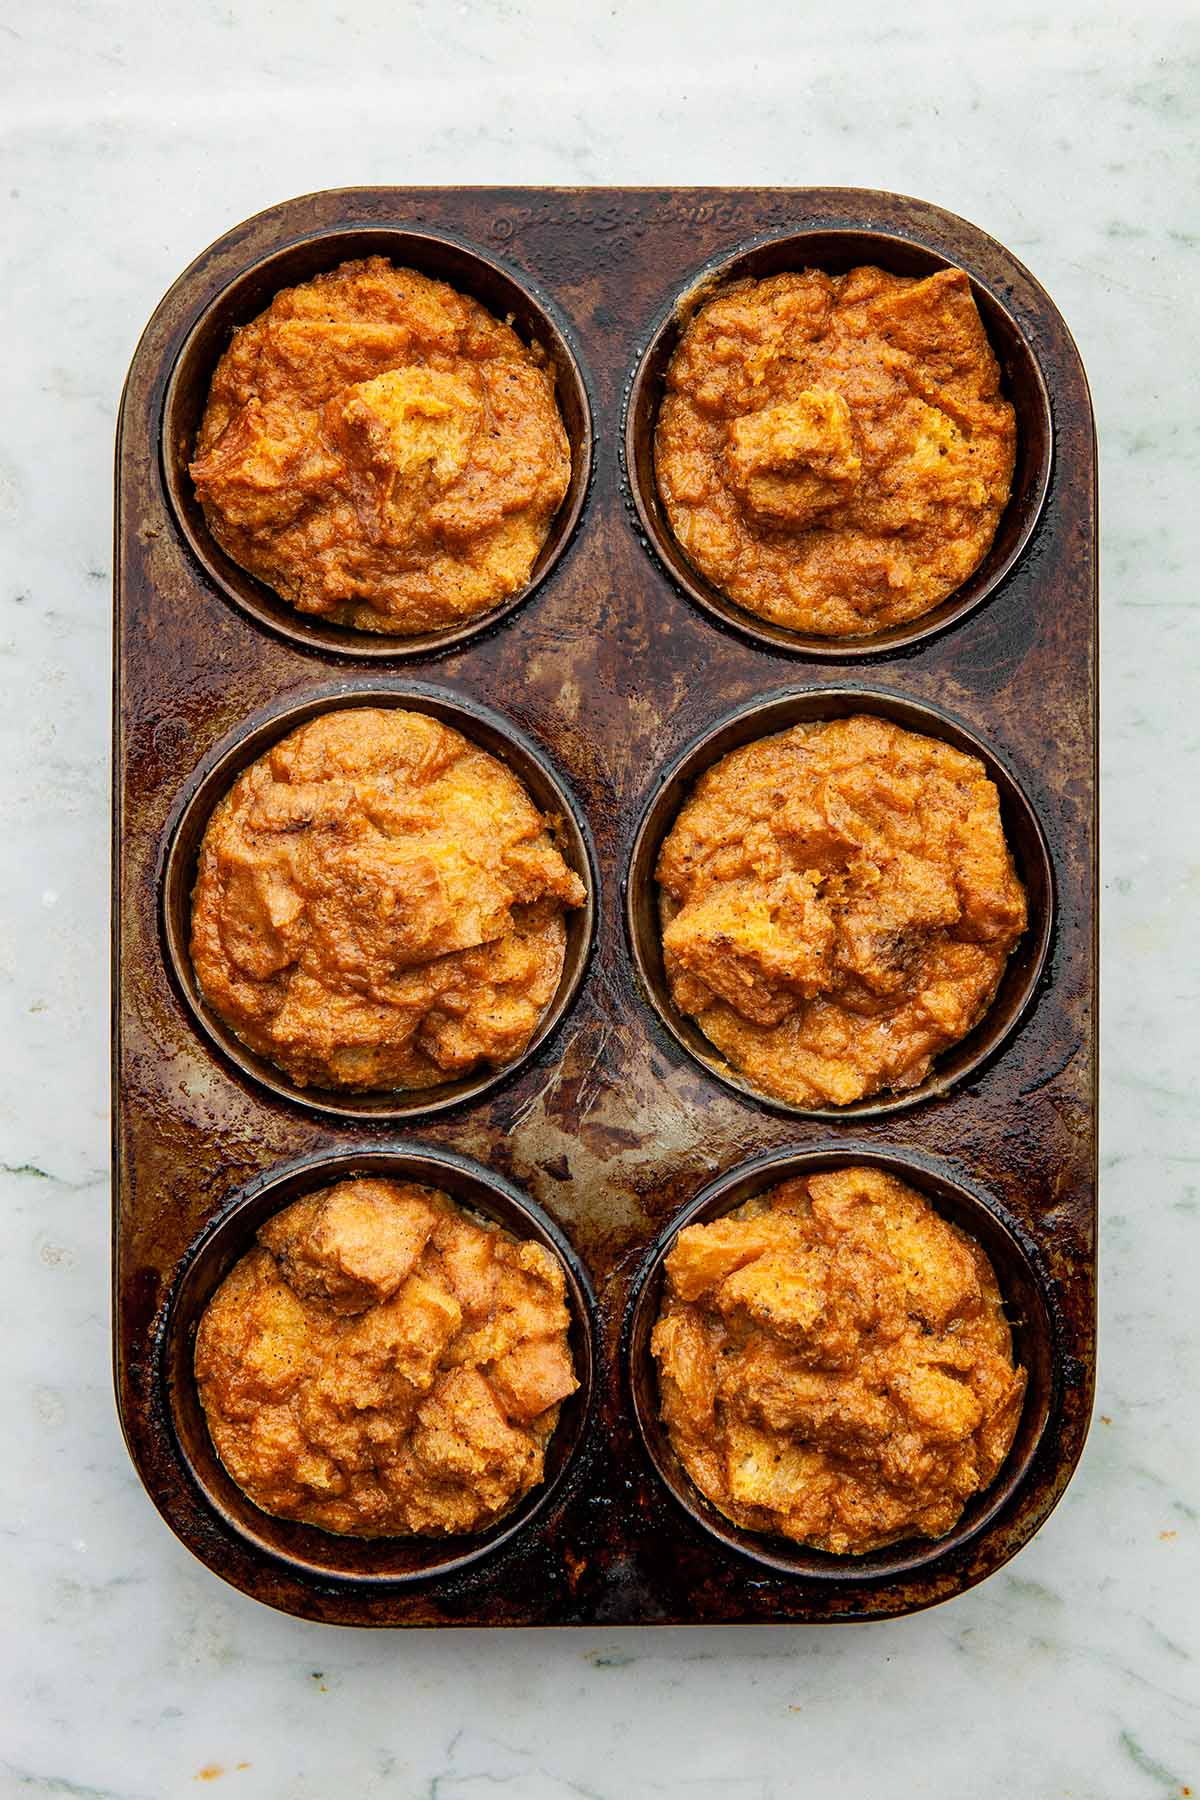 A six-cup jumbo muffin tin with baked pumpkin bread pudding inside each muffin cup.